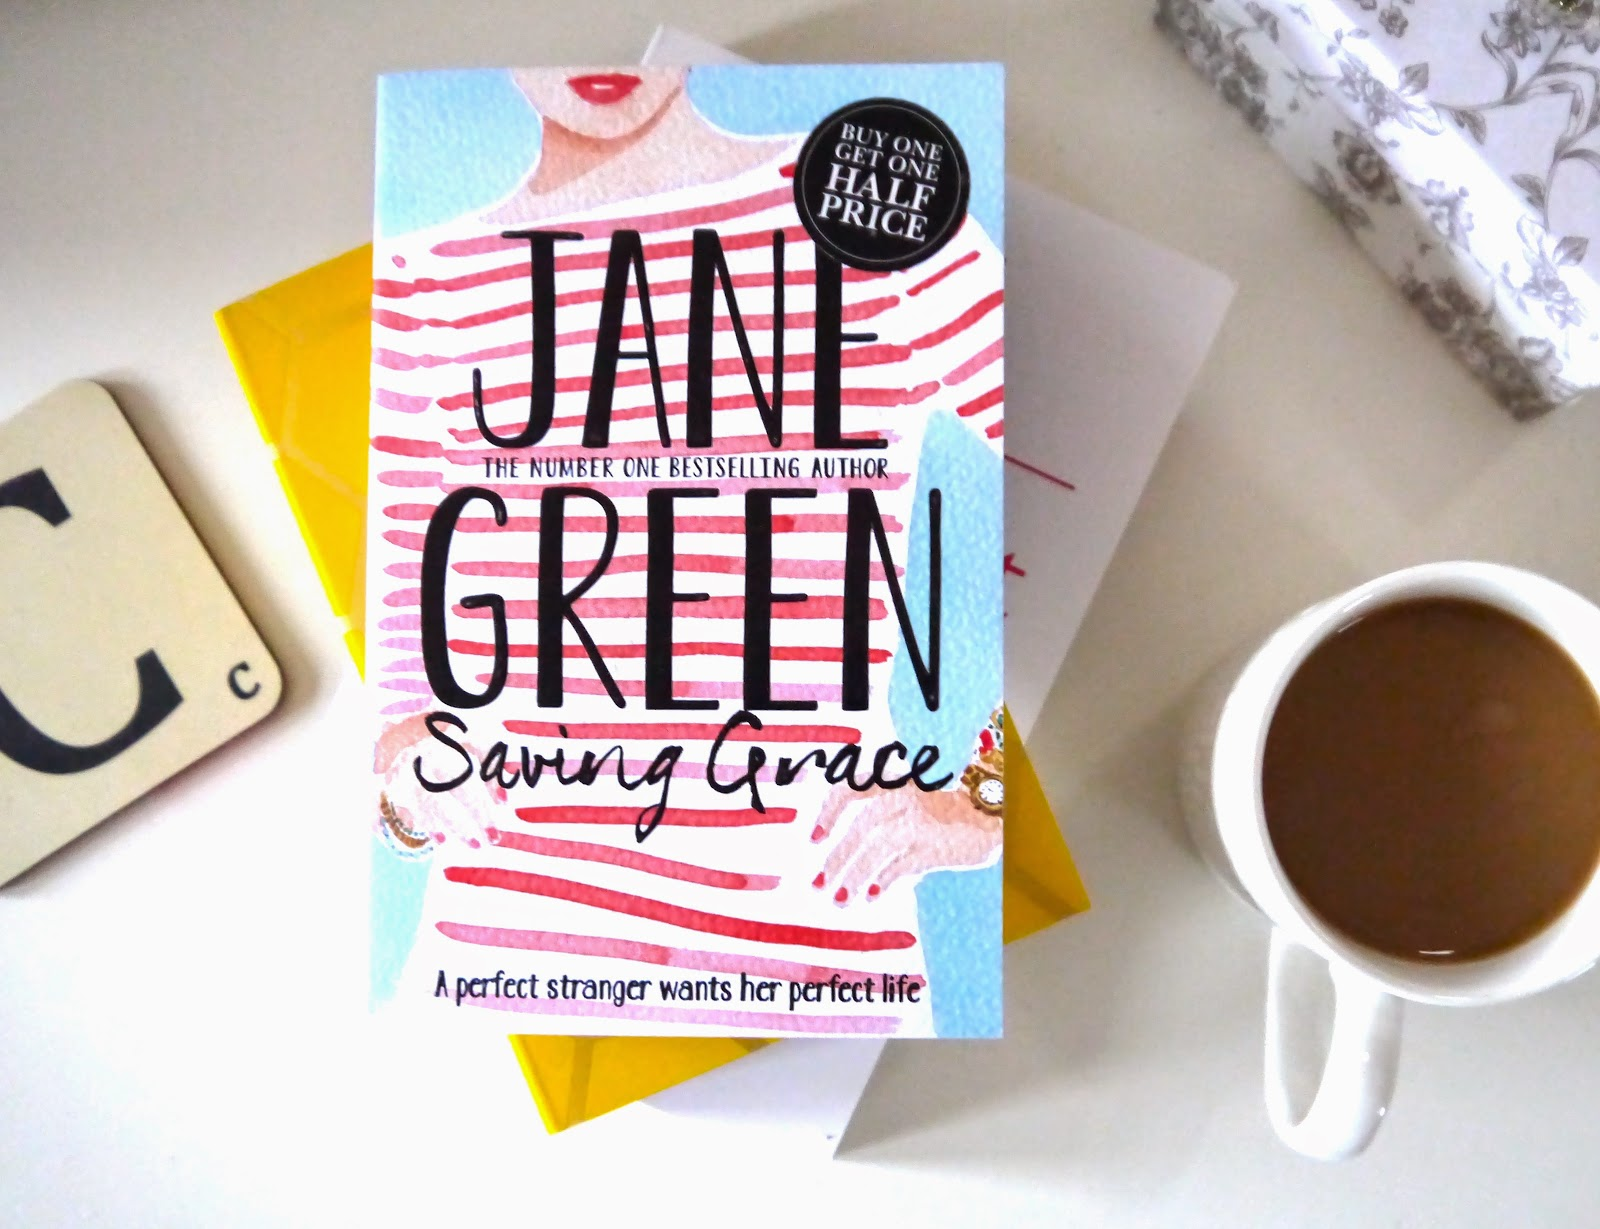 Saving Grace - Jane Green Book Review